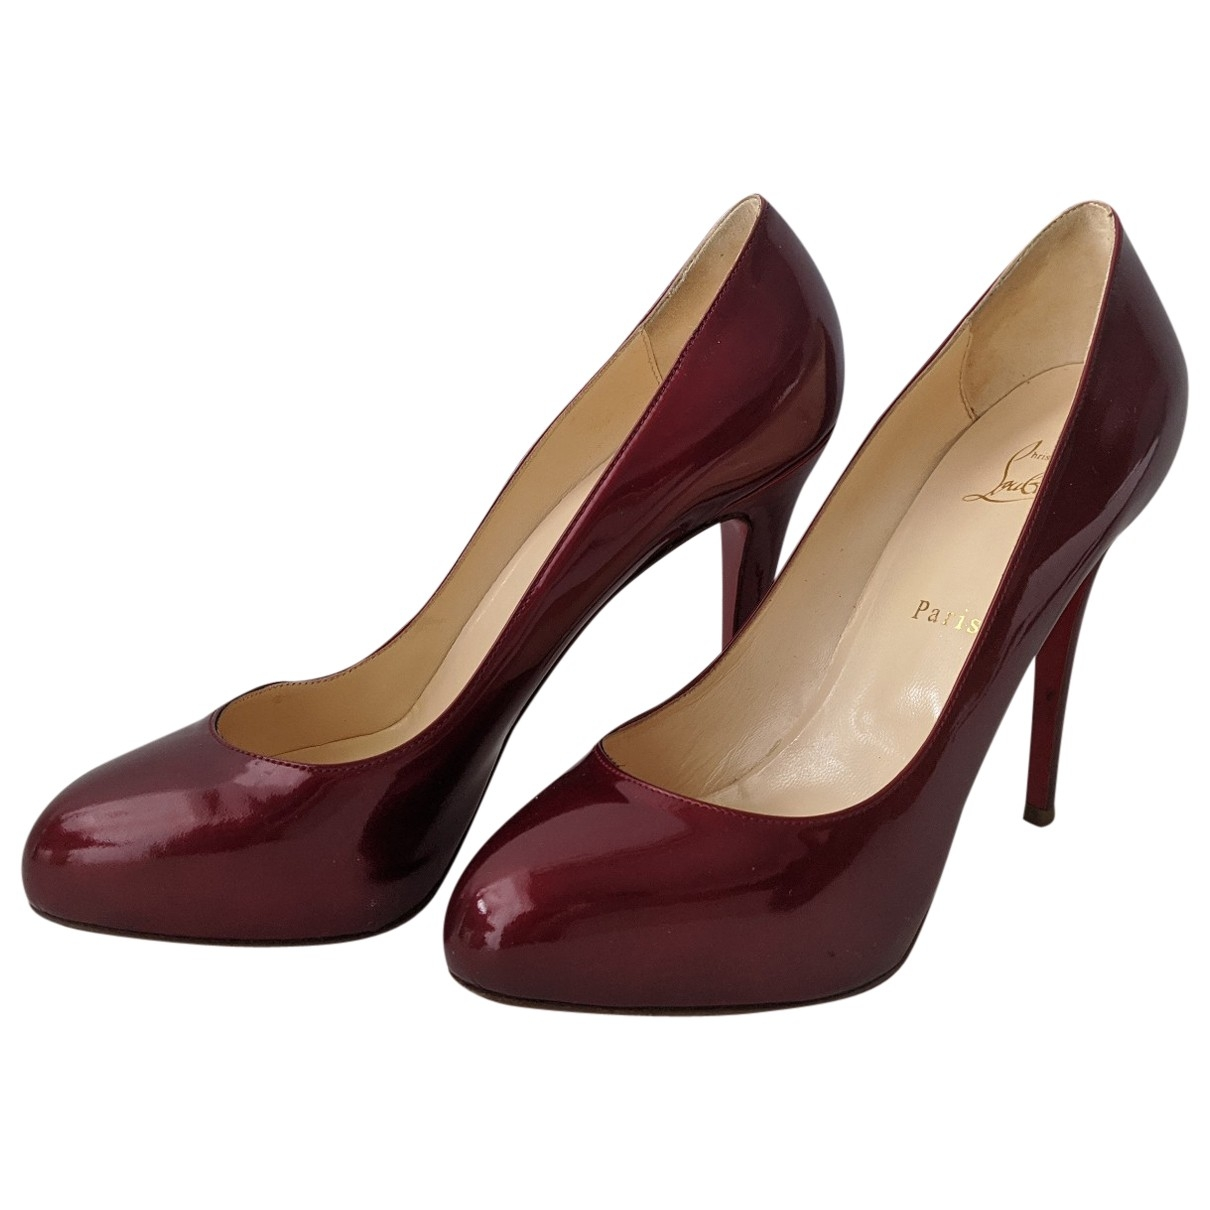 Christian Louboutin Simple pump Red Patent leather Heels for Women 40 EU